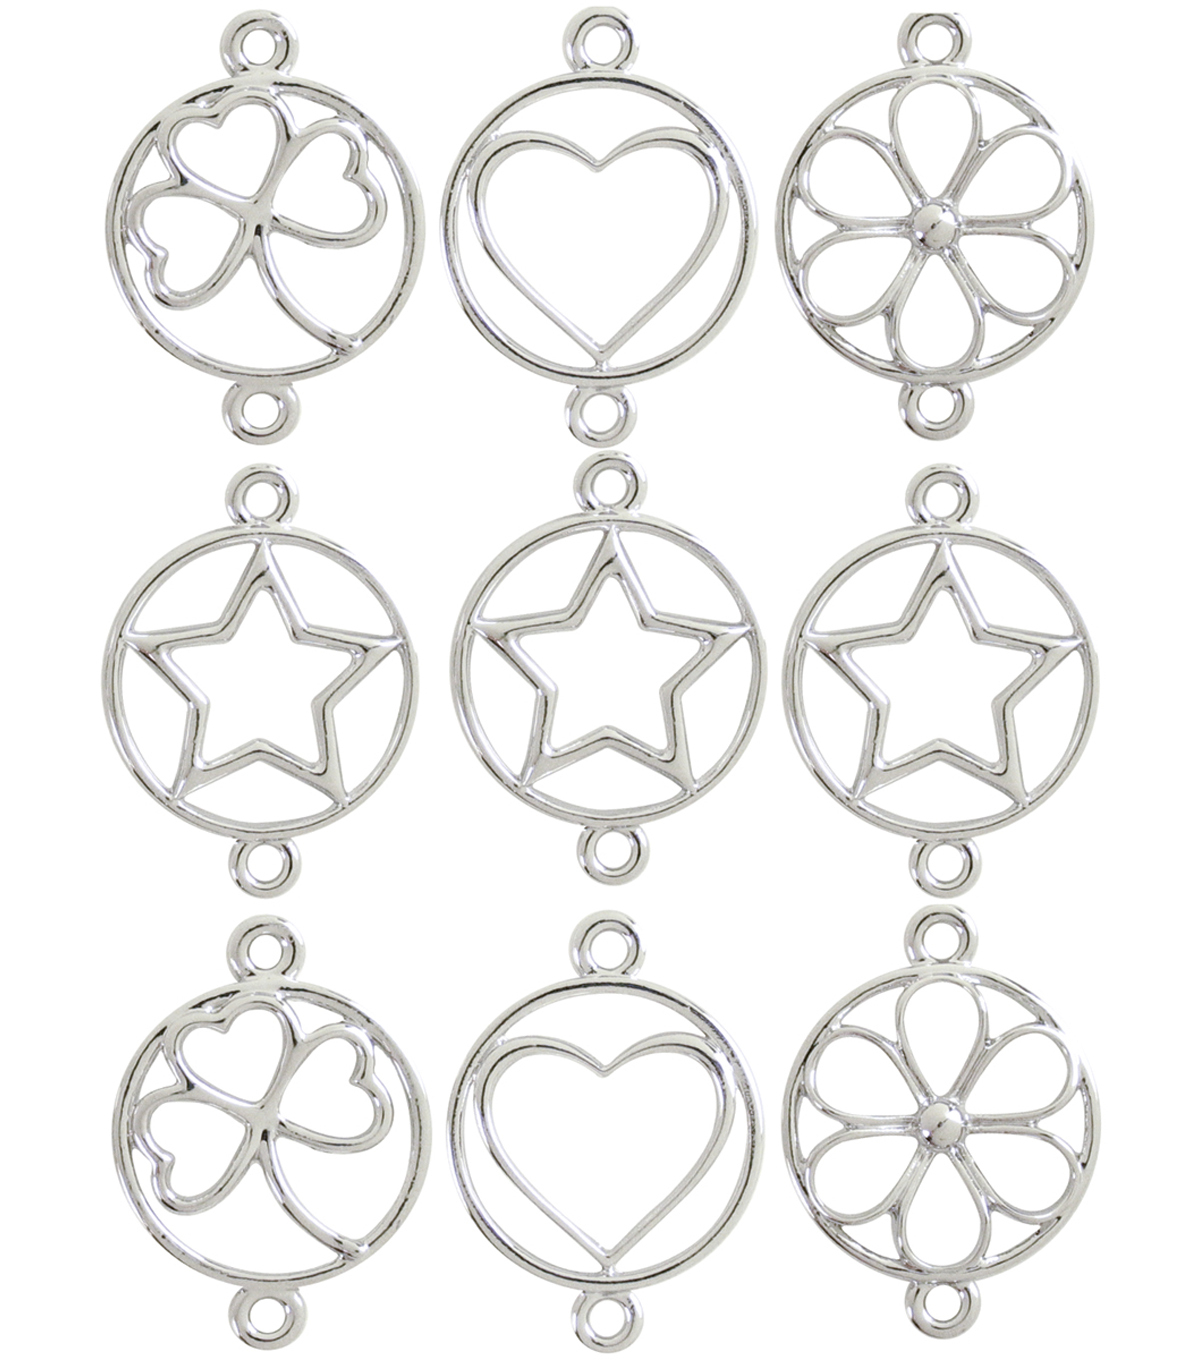 Jewelry Basics Metal Charms 9/Pk-Silver Shapes